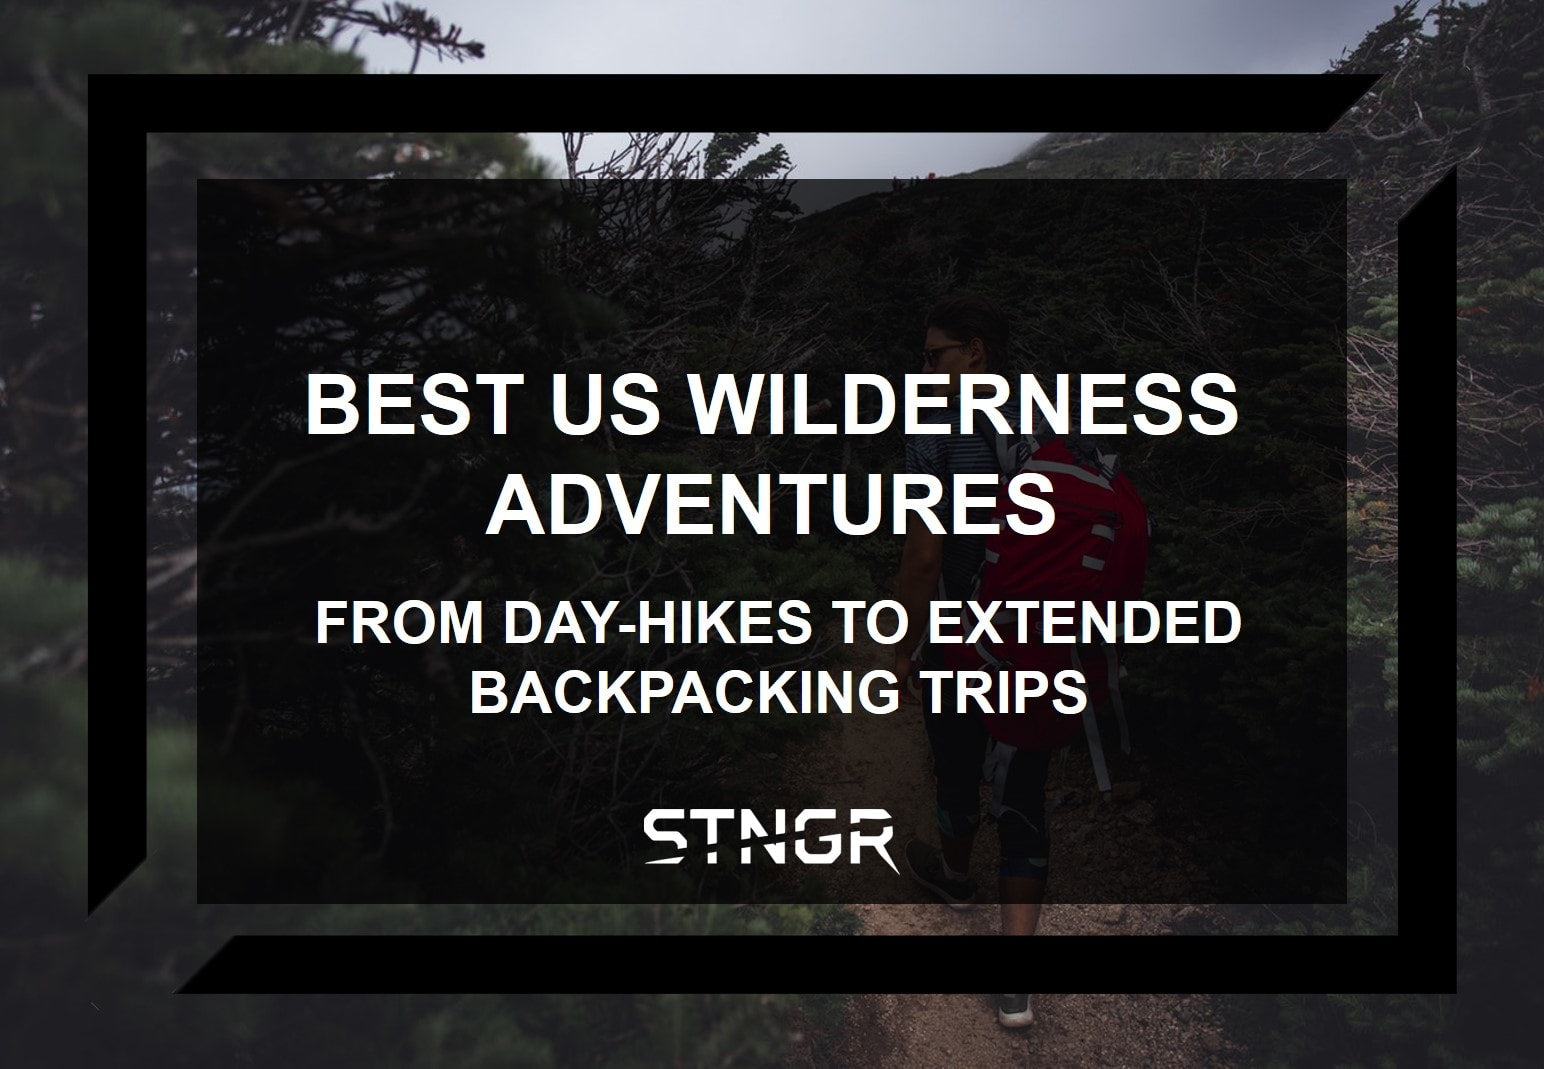 Best US Wilderness Adventures (From Day-Hikes to Extended Backpacking Trips)